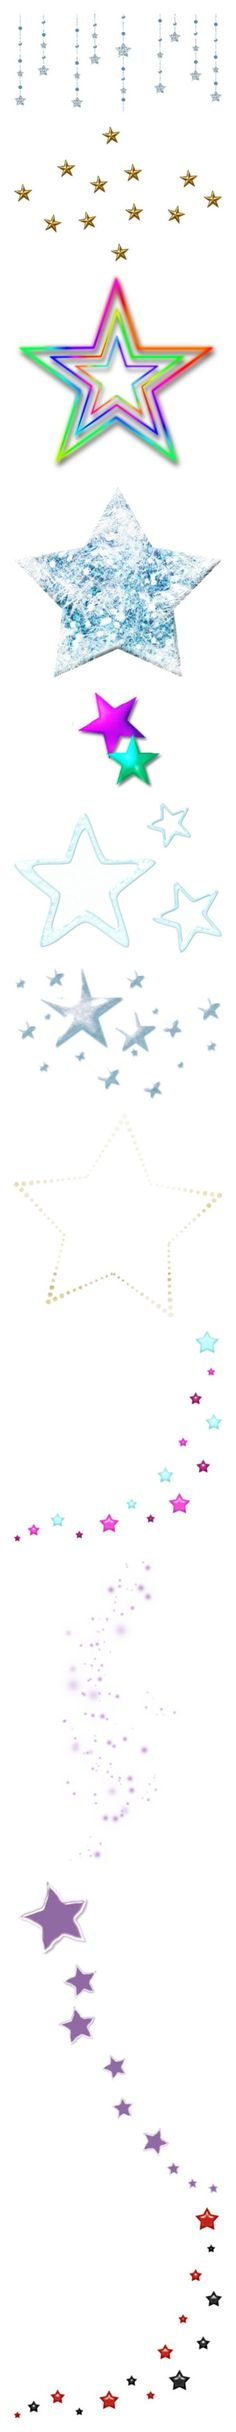 """""""twinkle twinkle little star"""" by pokeasaurousrex ❤ liked on Polyvore featuring star, stars, filler, backgrounds, effects, fillers, christmas, embellishment, detail and holiday"""